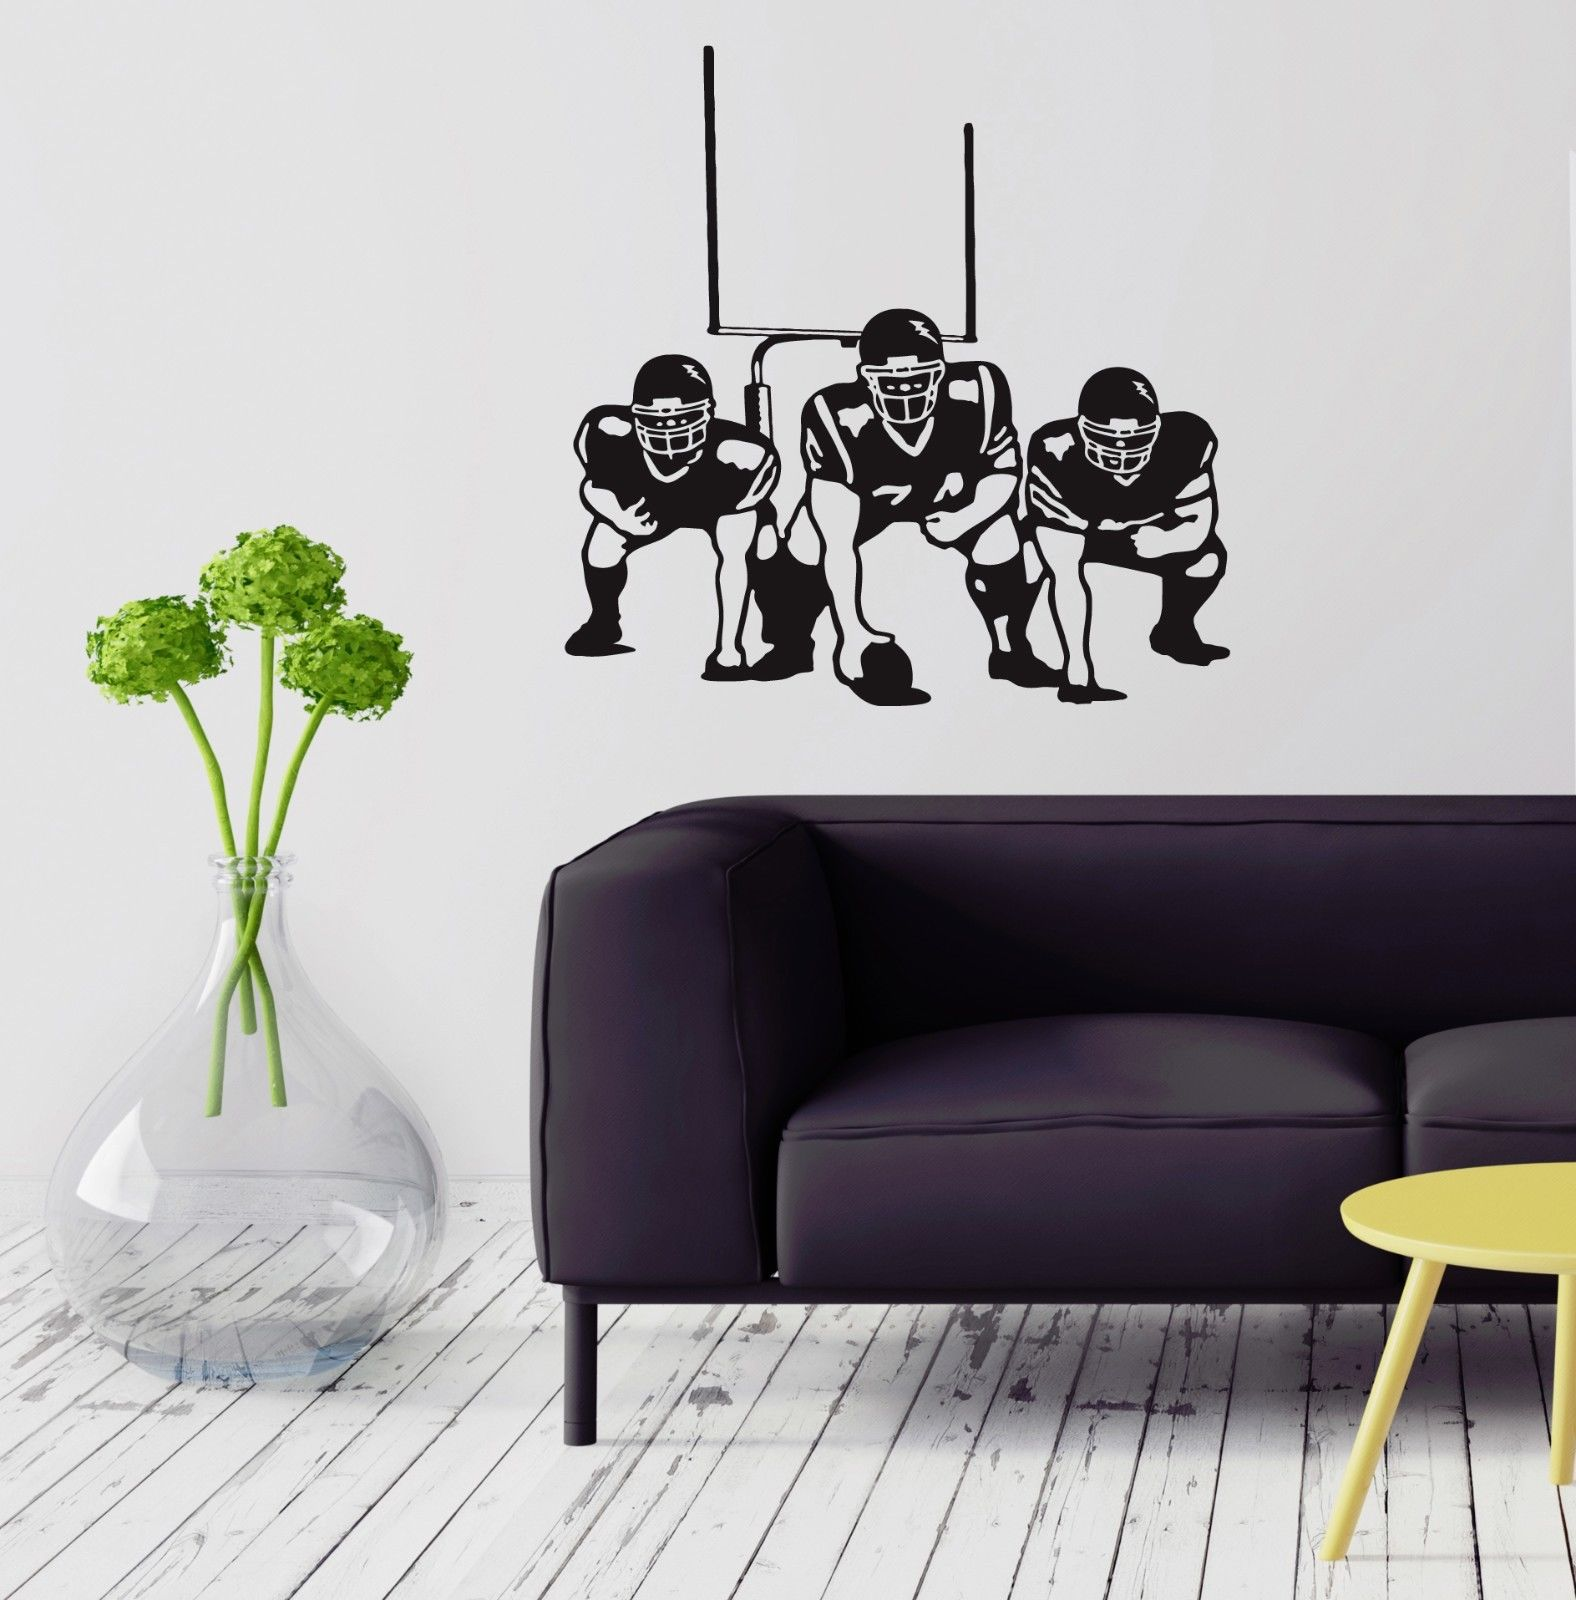 Childrens football wall stickers images home wall decoration ideas childrens football wall stickers images home wall decoration ideas childrens football wall stickers todosobreelamorfo childrens football amipublicfo Images